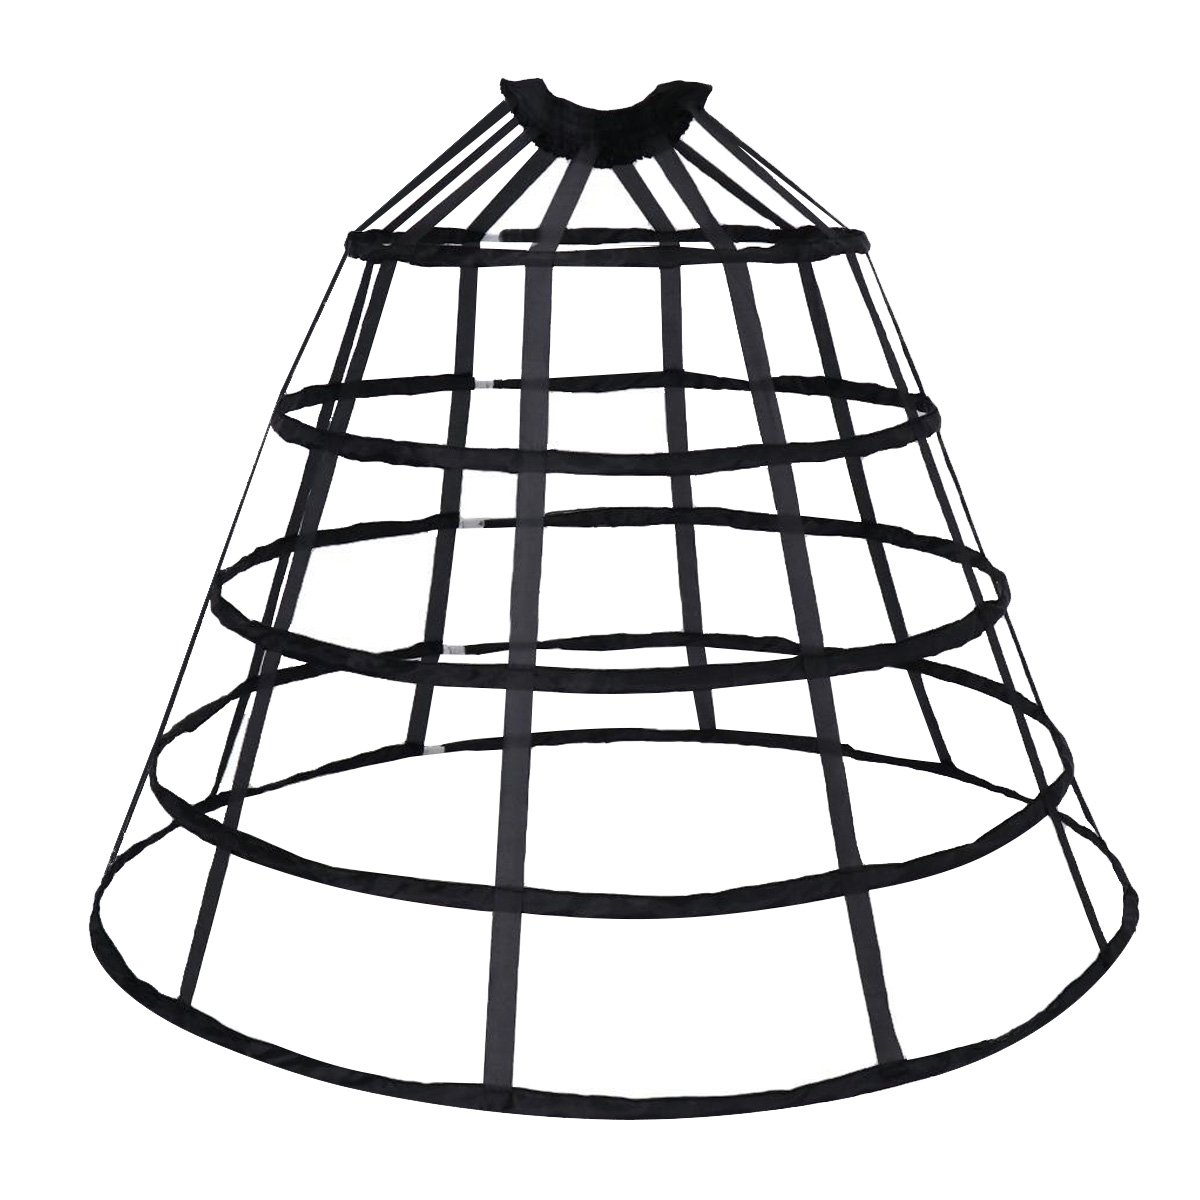 cheap dress hoop skirt find dress hoop skirt deals on line at Easy to Make Petticoat get quotations happystory cage hoop skirt petticoat dress pannier 5 hoops bustle cage crinoline